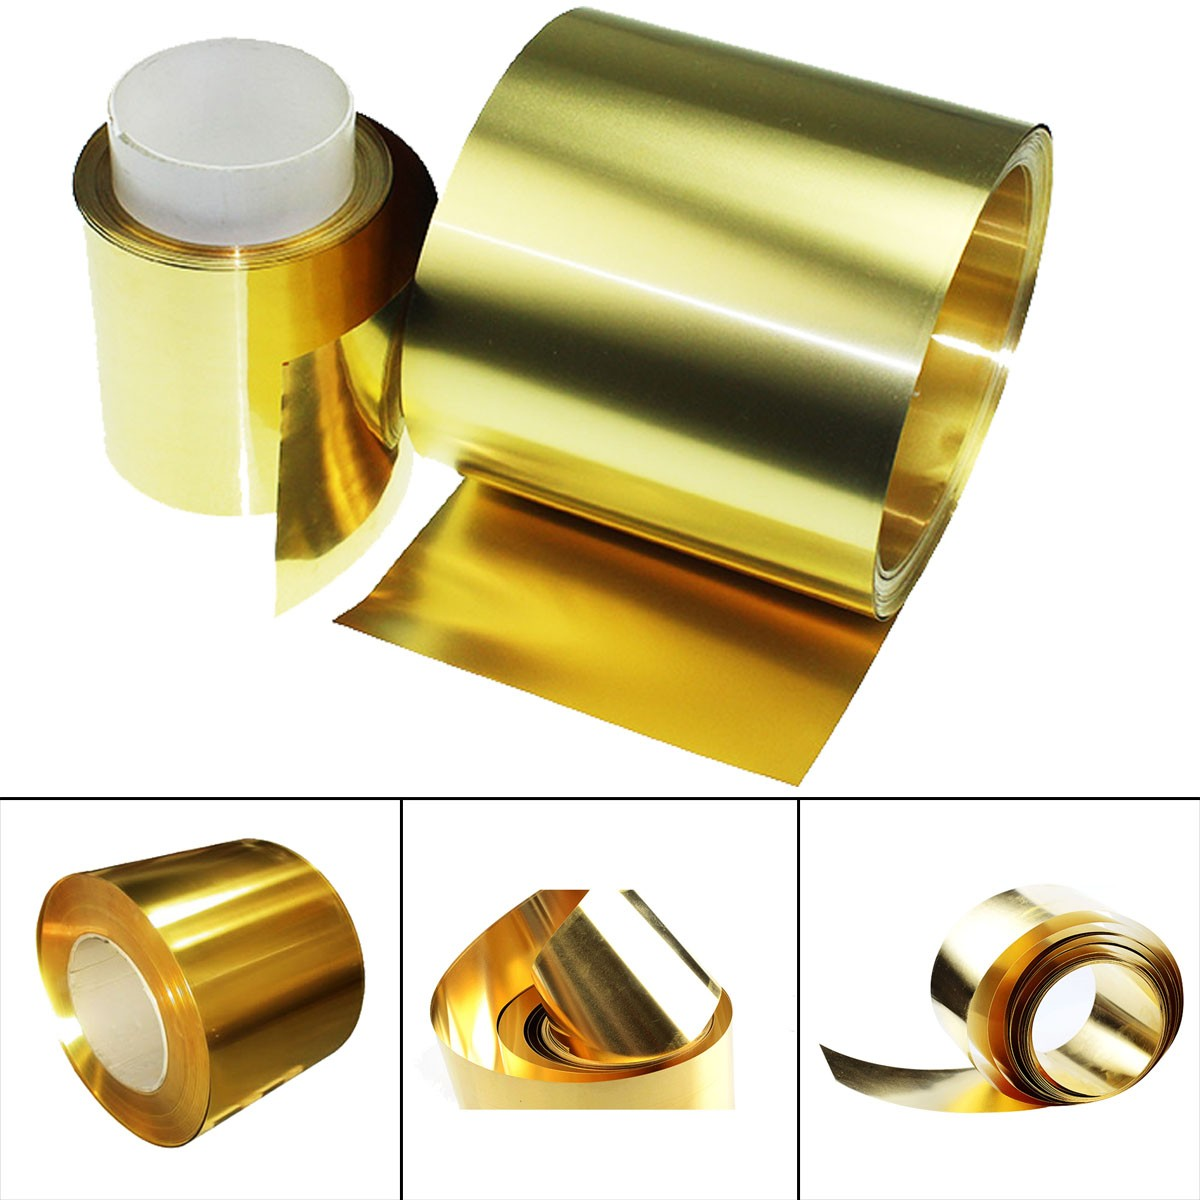 1pc 100 X 1000 Mm 0.02mm Thickness Brass Sheet Metal Thin Foil Plate Shim Industry Materials For Metalworking Welding